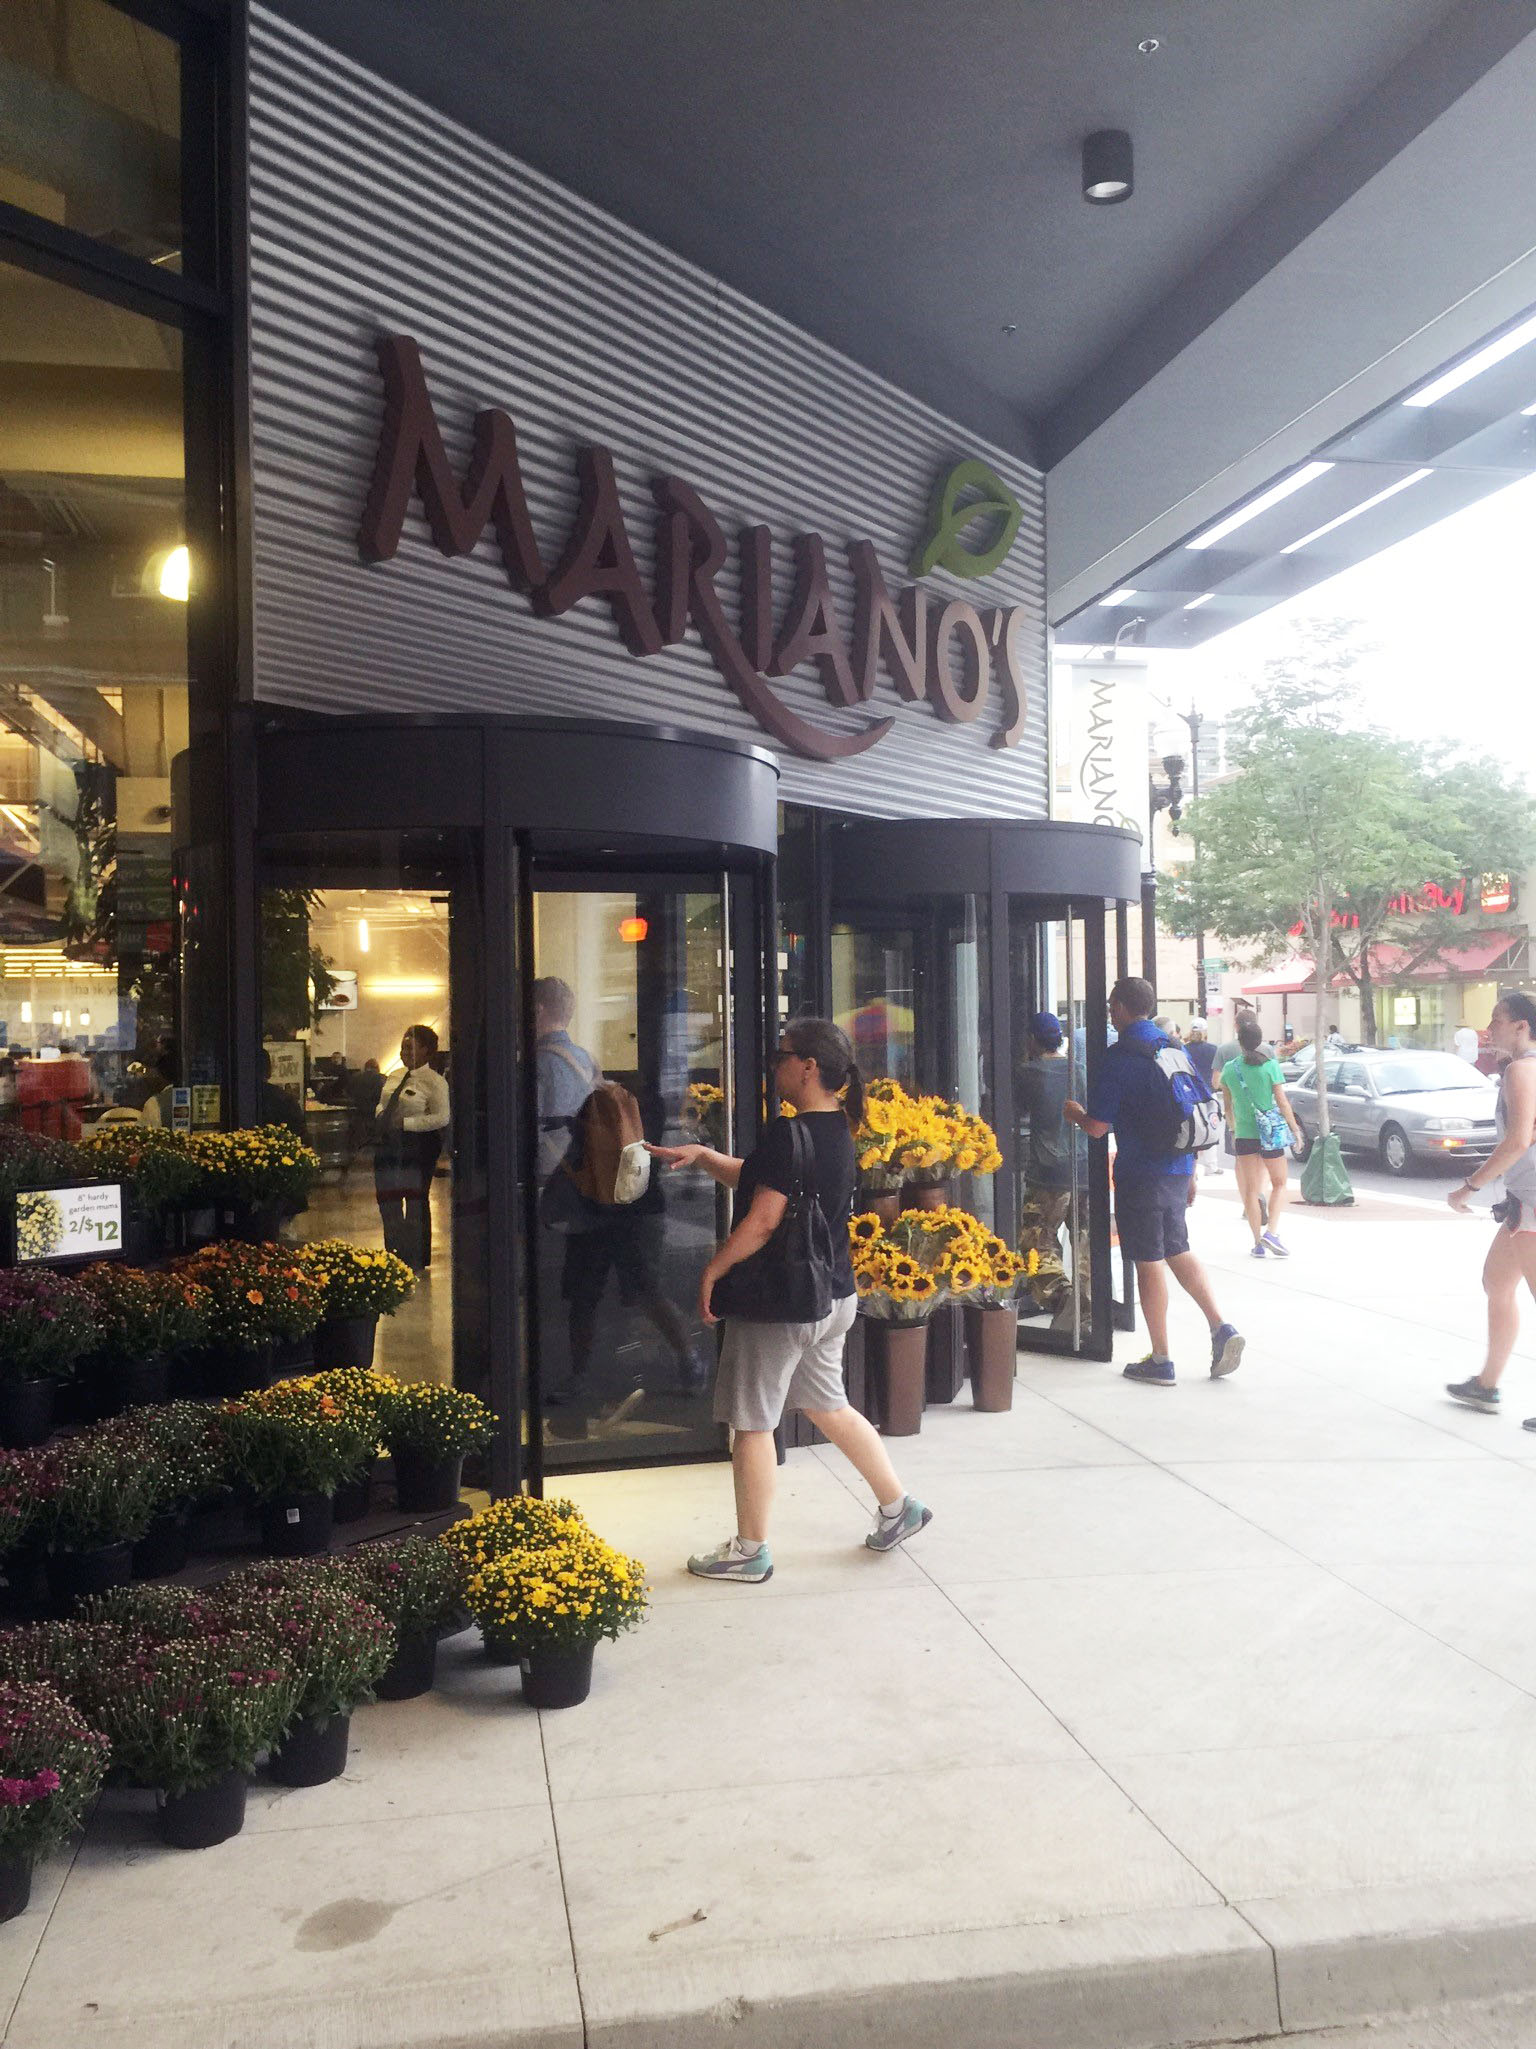 Marianos in Chicago with Revolving Doors.jpg